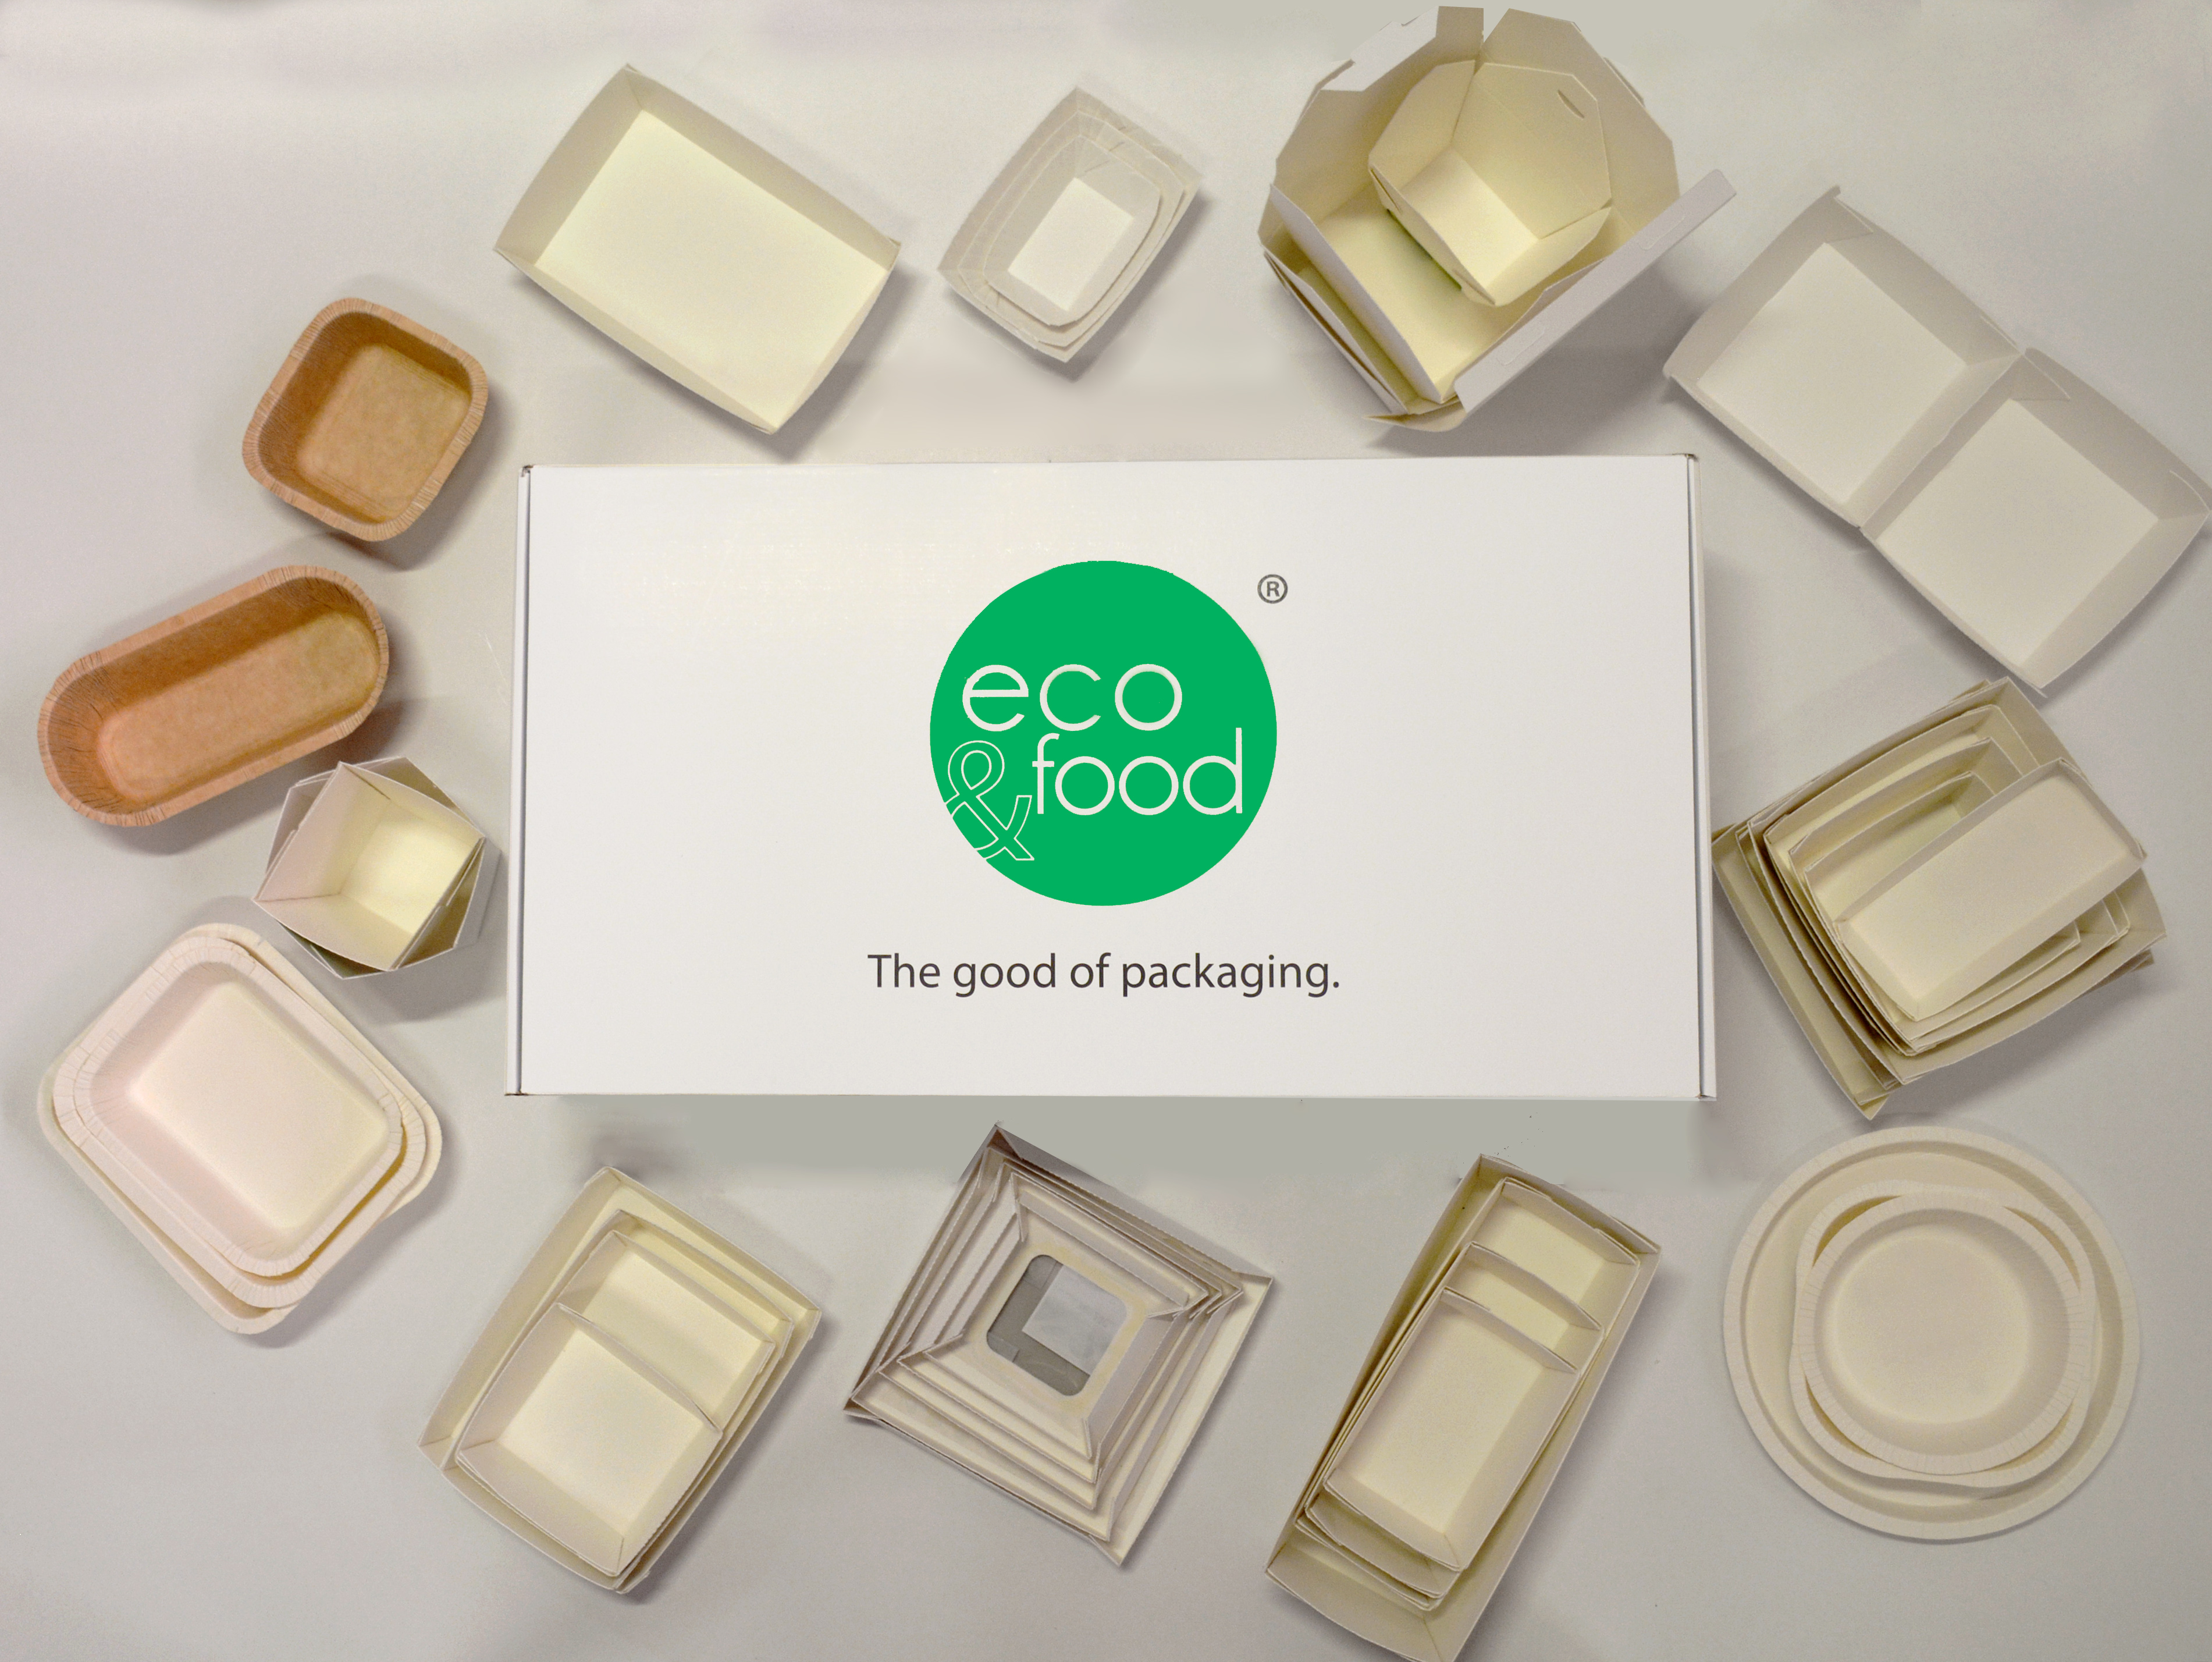 Discover the latest products by Eco&Food